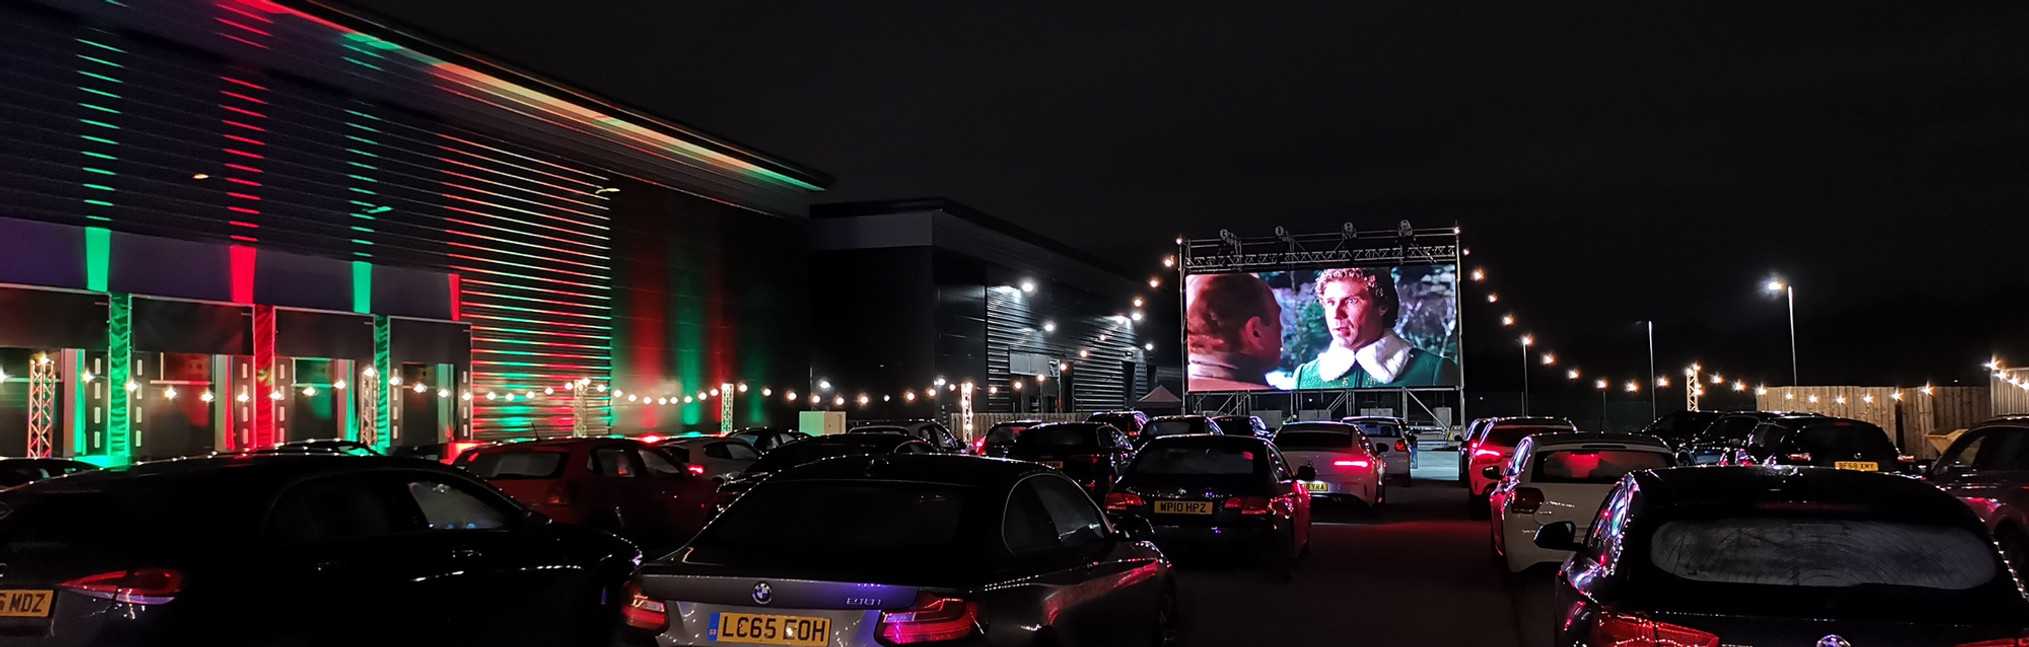 Large Drive-in cinema